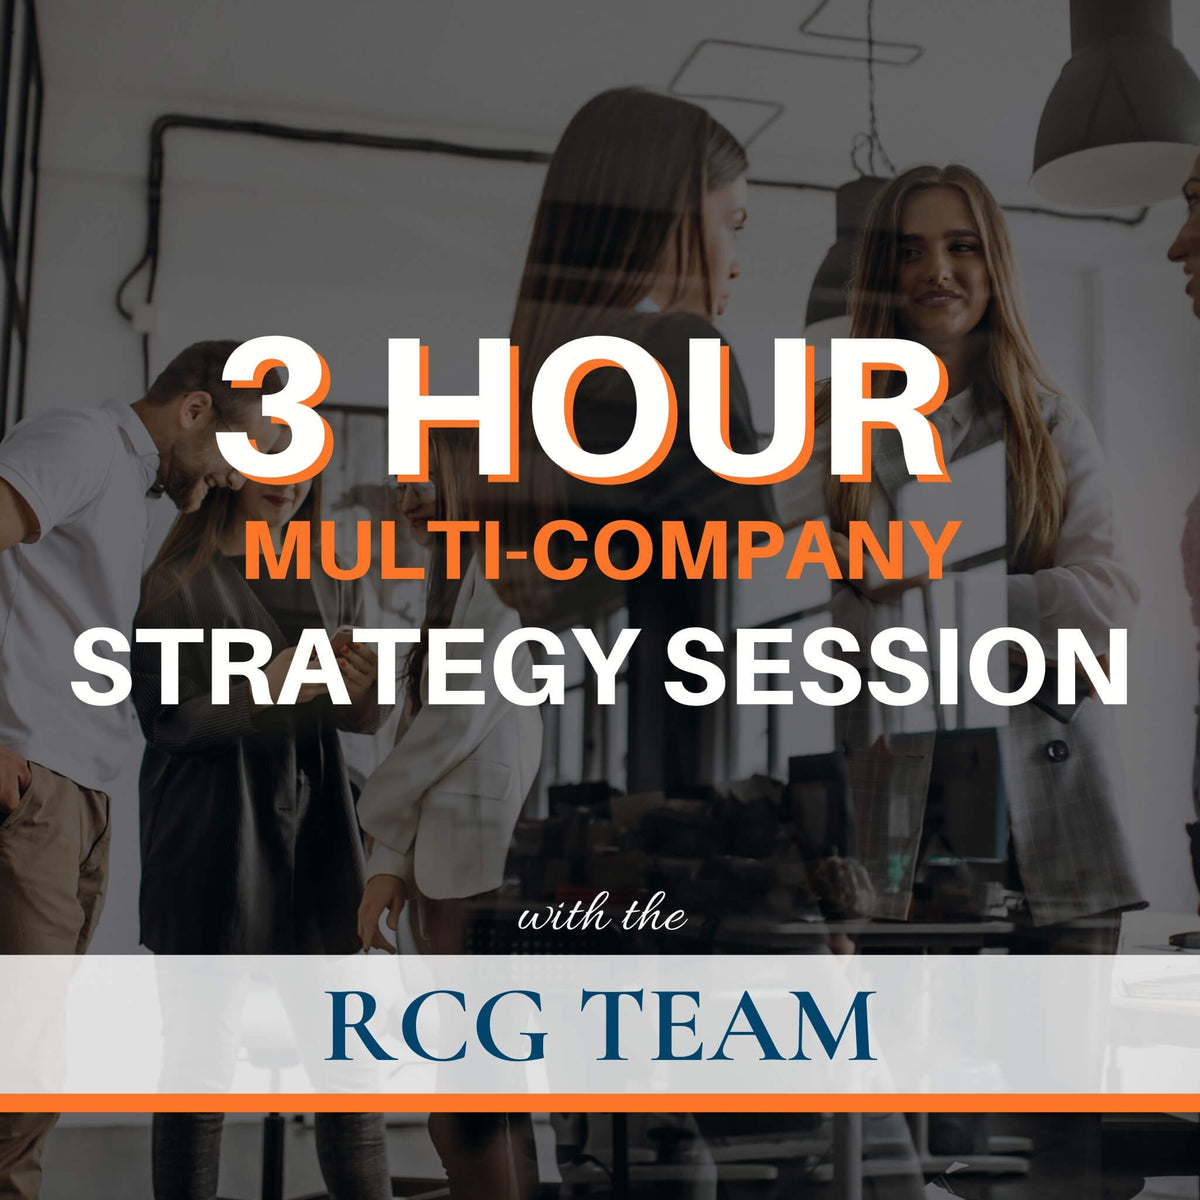 3 Hour Multi-Company Strategy Session with the RCG Team